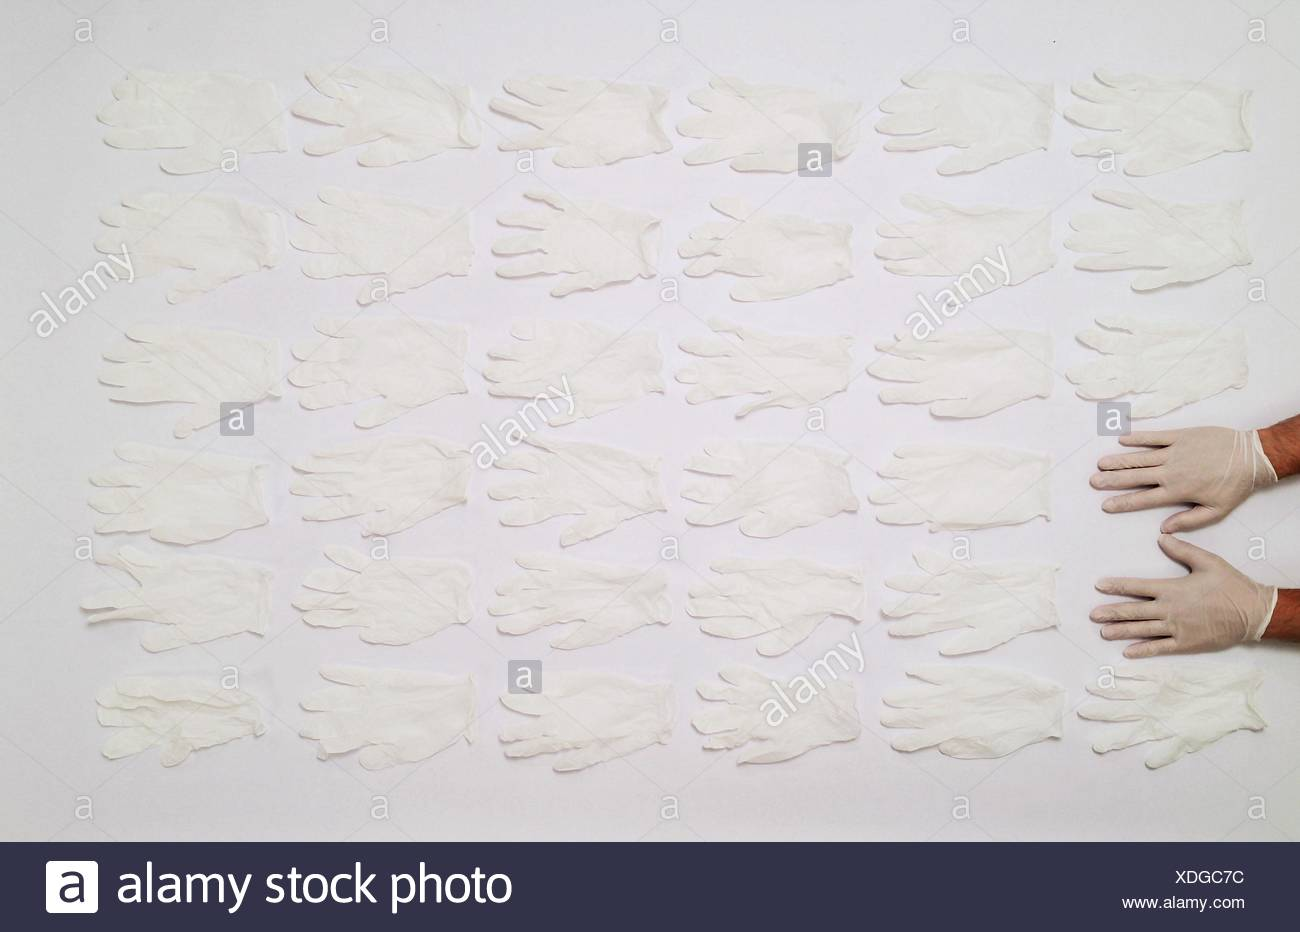 Cropped Hands In Front Of Gloves Arranged On Table - Stock Image